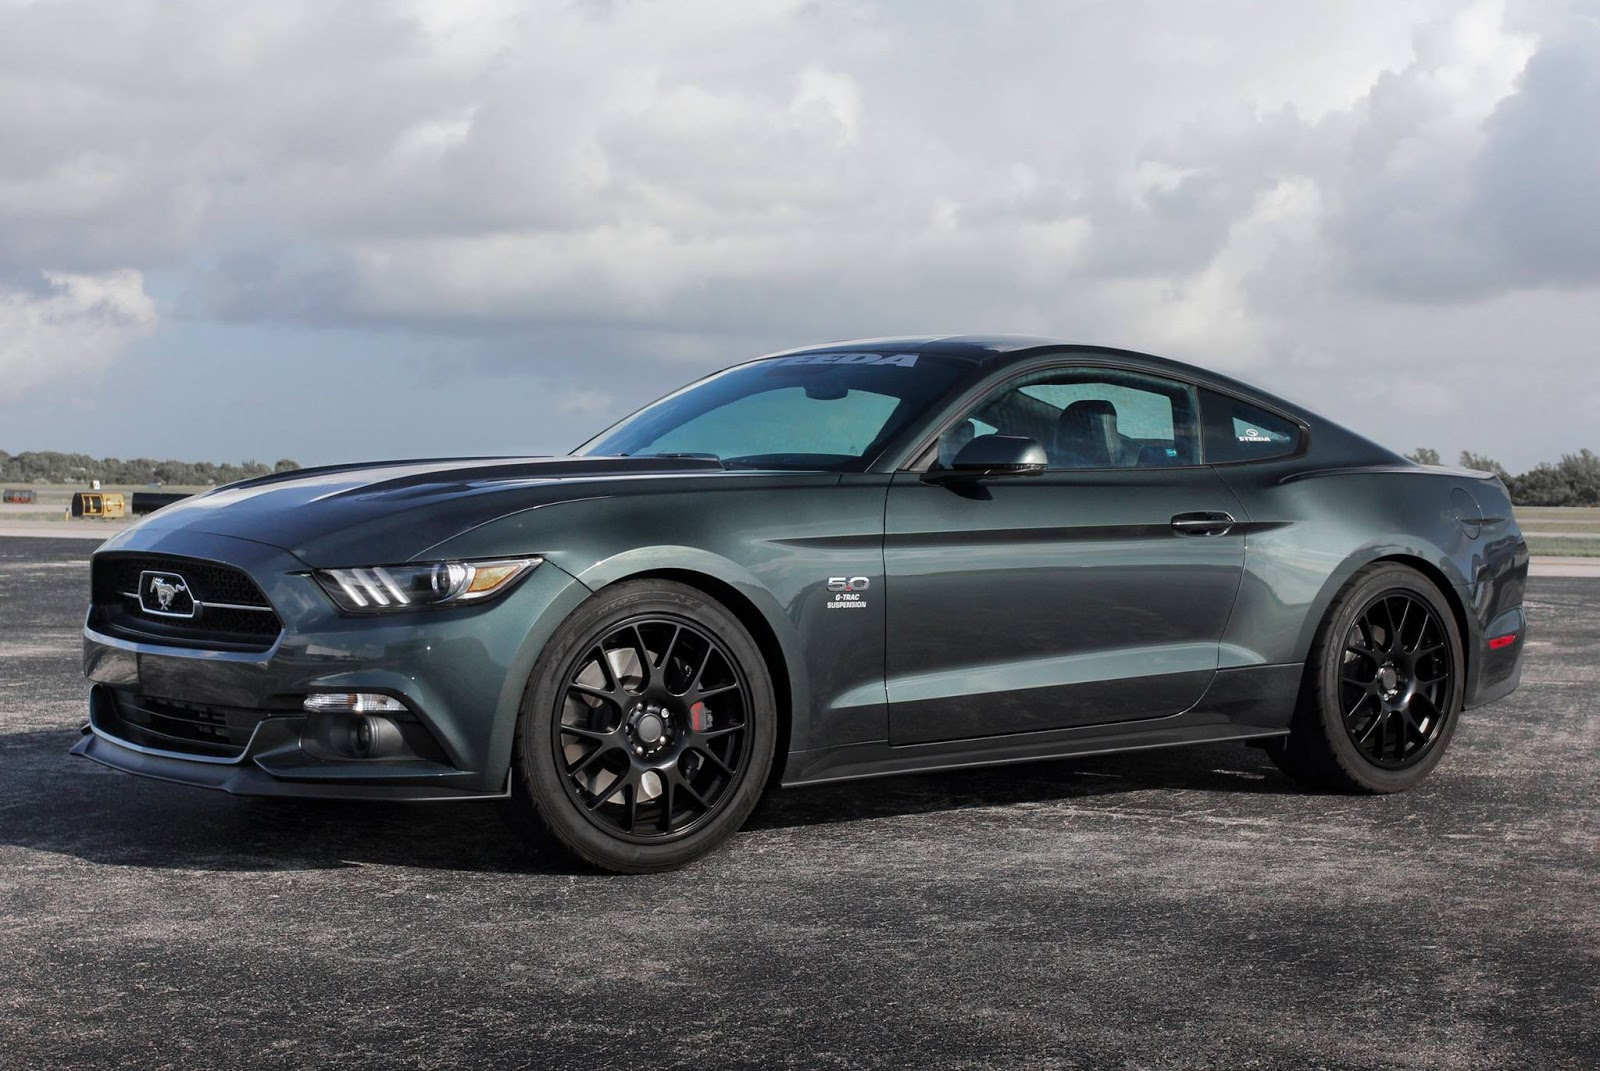 steeda reveals 2015 ford mustang upgrades gtspirit. Black Bedroom Furniture Sets. Home Design Ideas